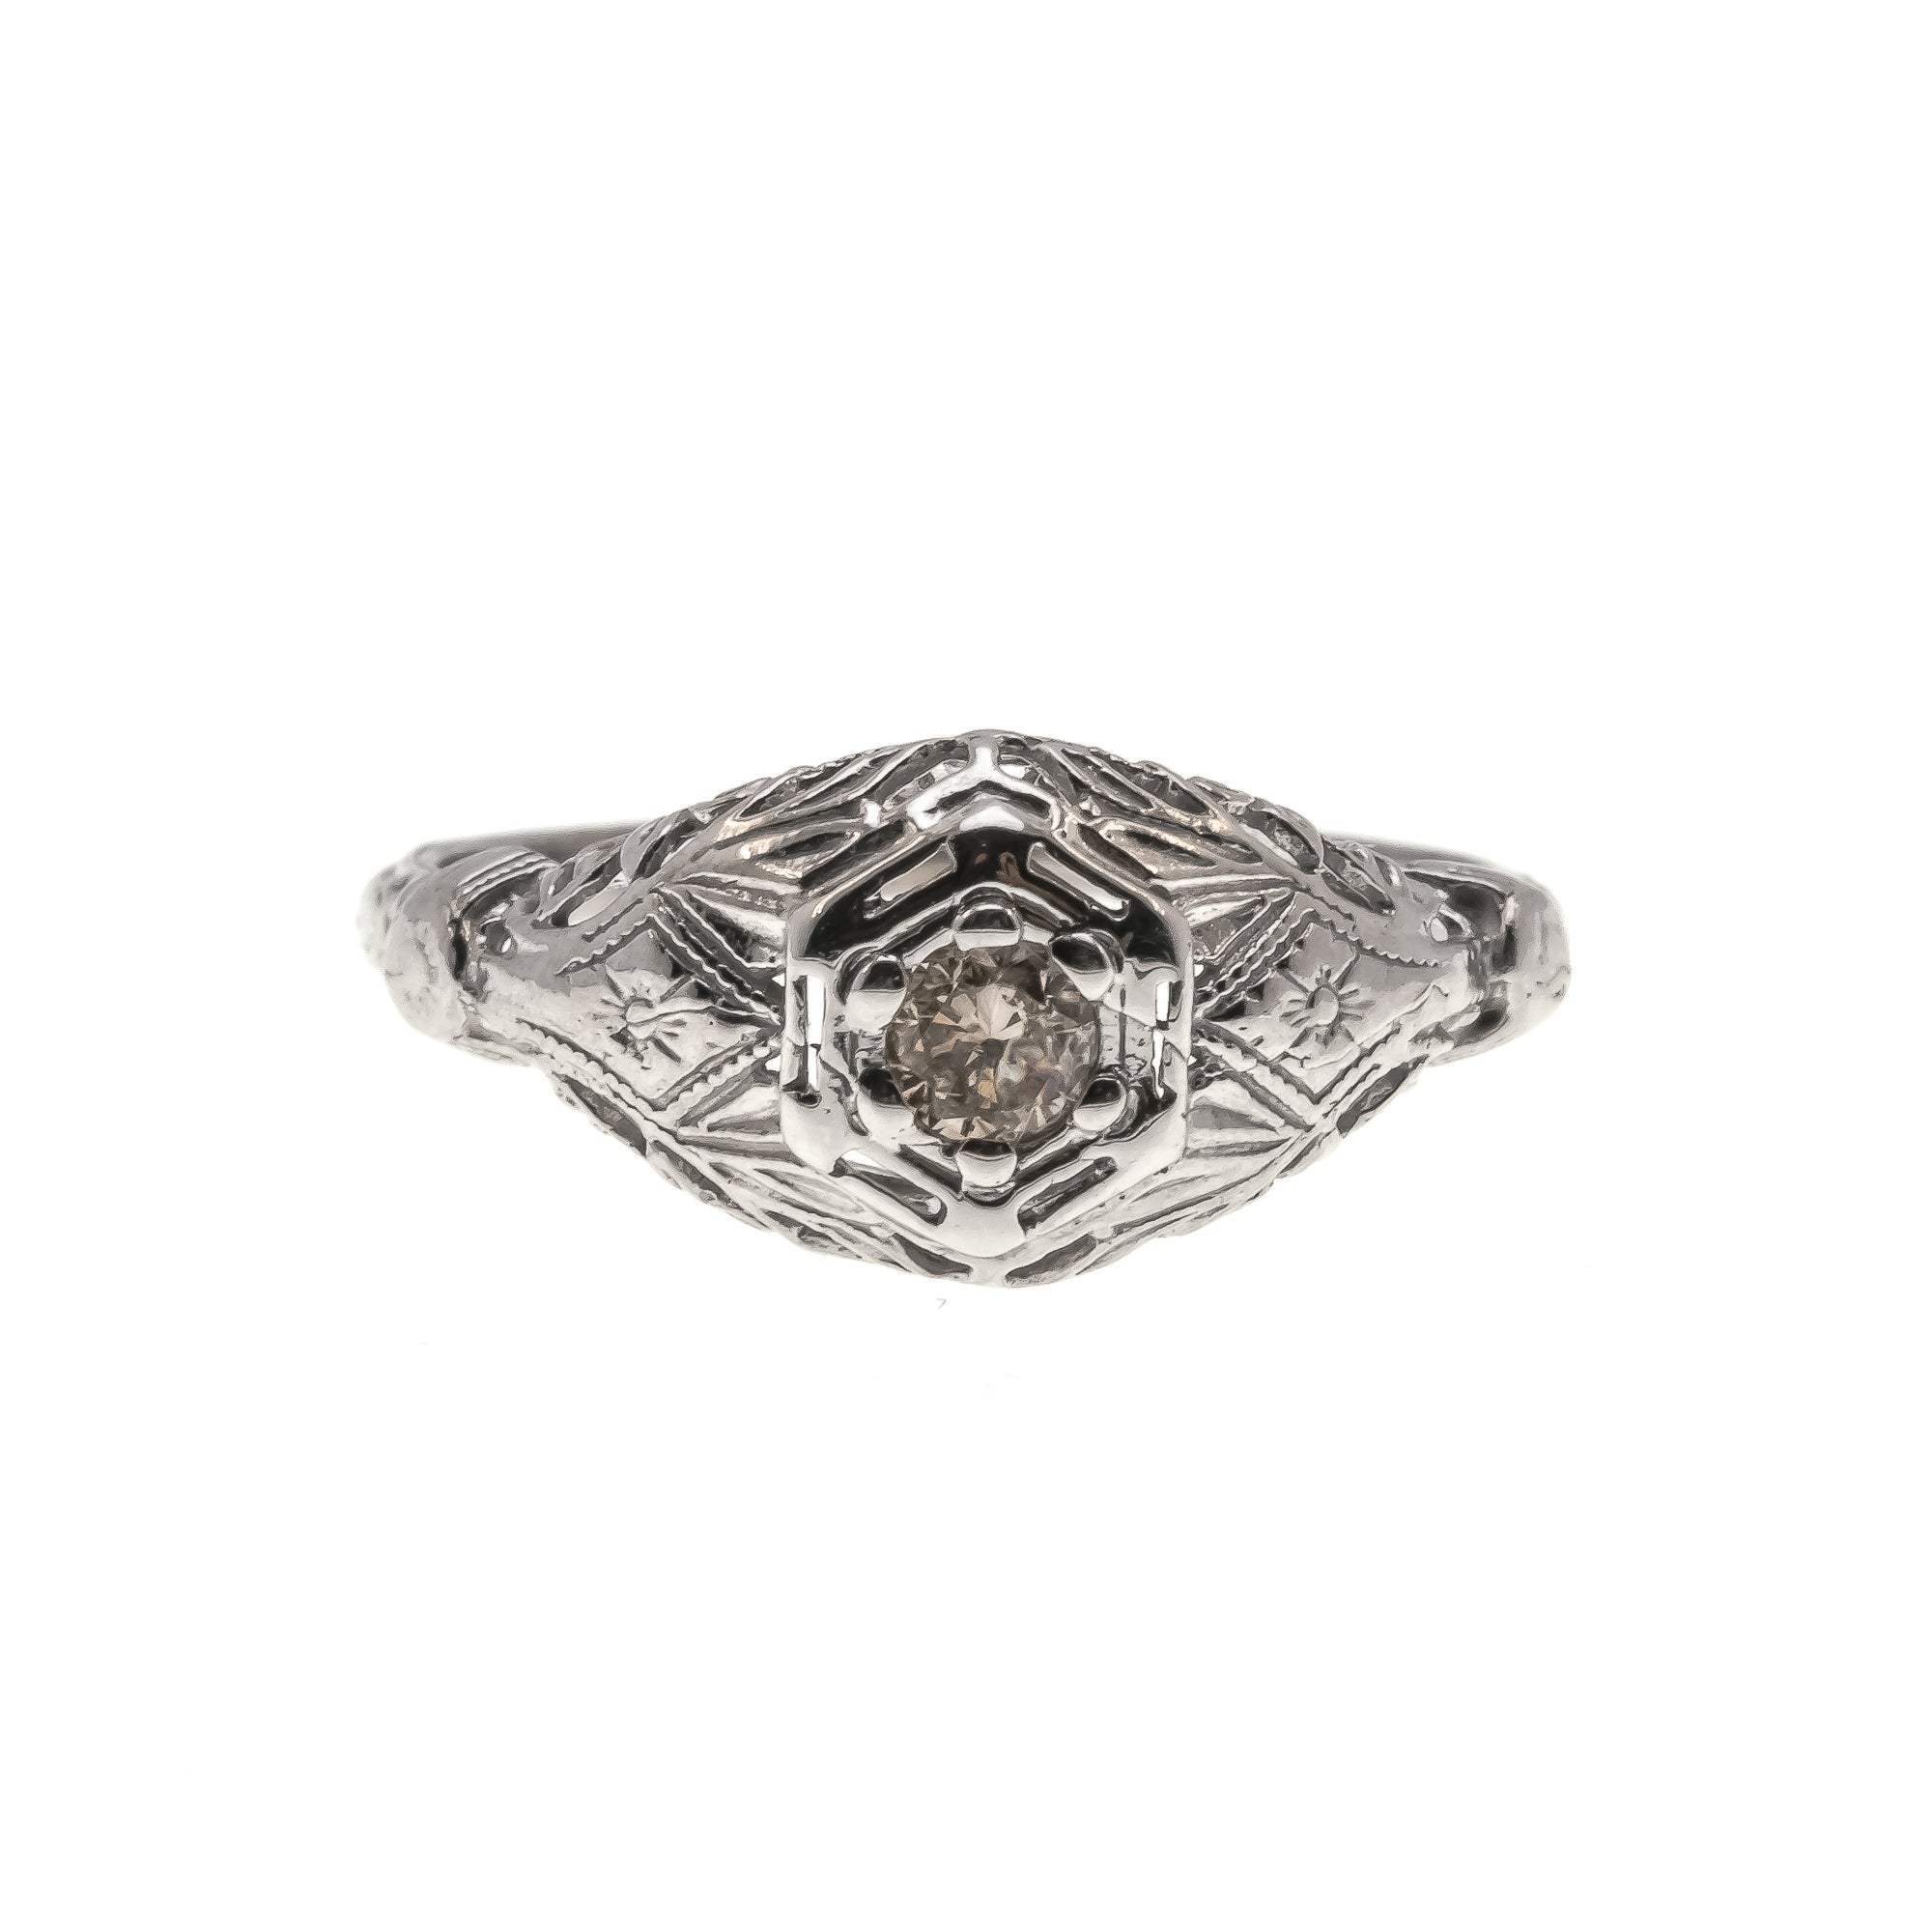 Roses & Lace - Art Deco 10K Natural Fancy Pink Diamond Filigree Ring (ADR168)